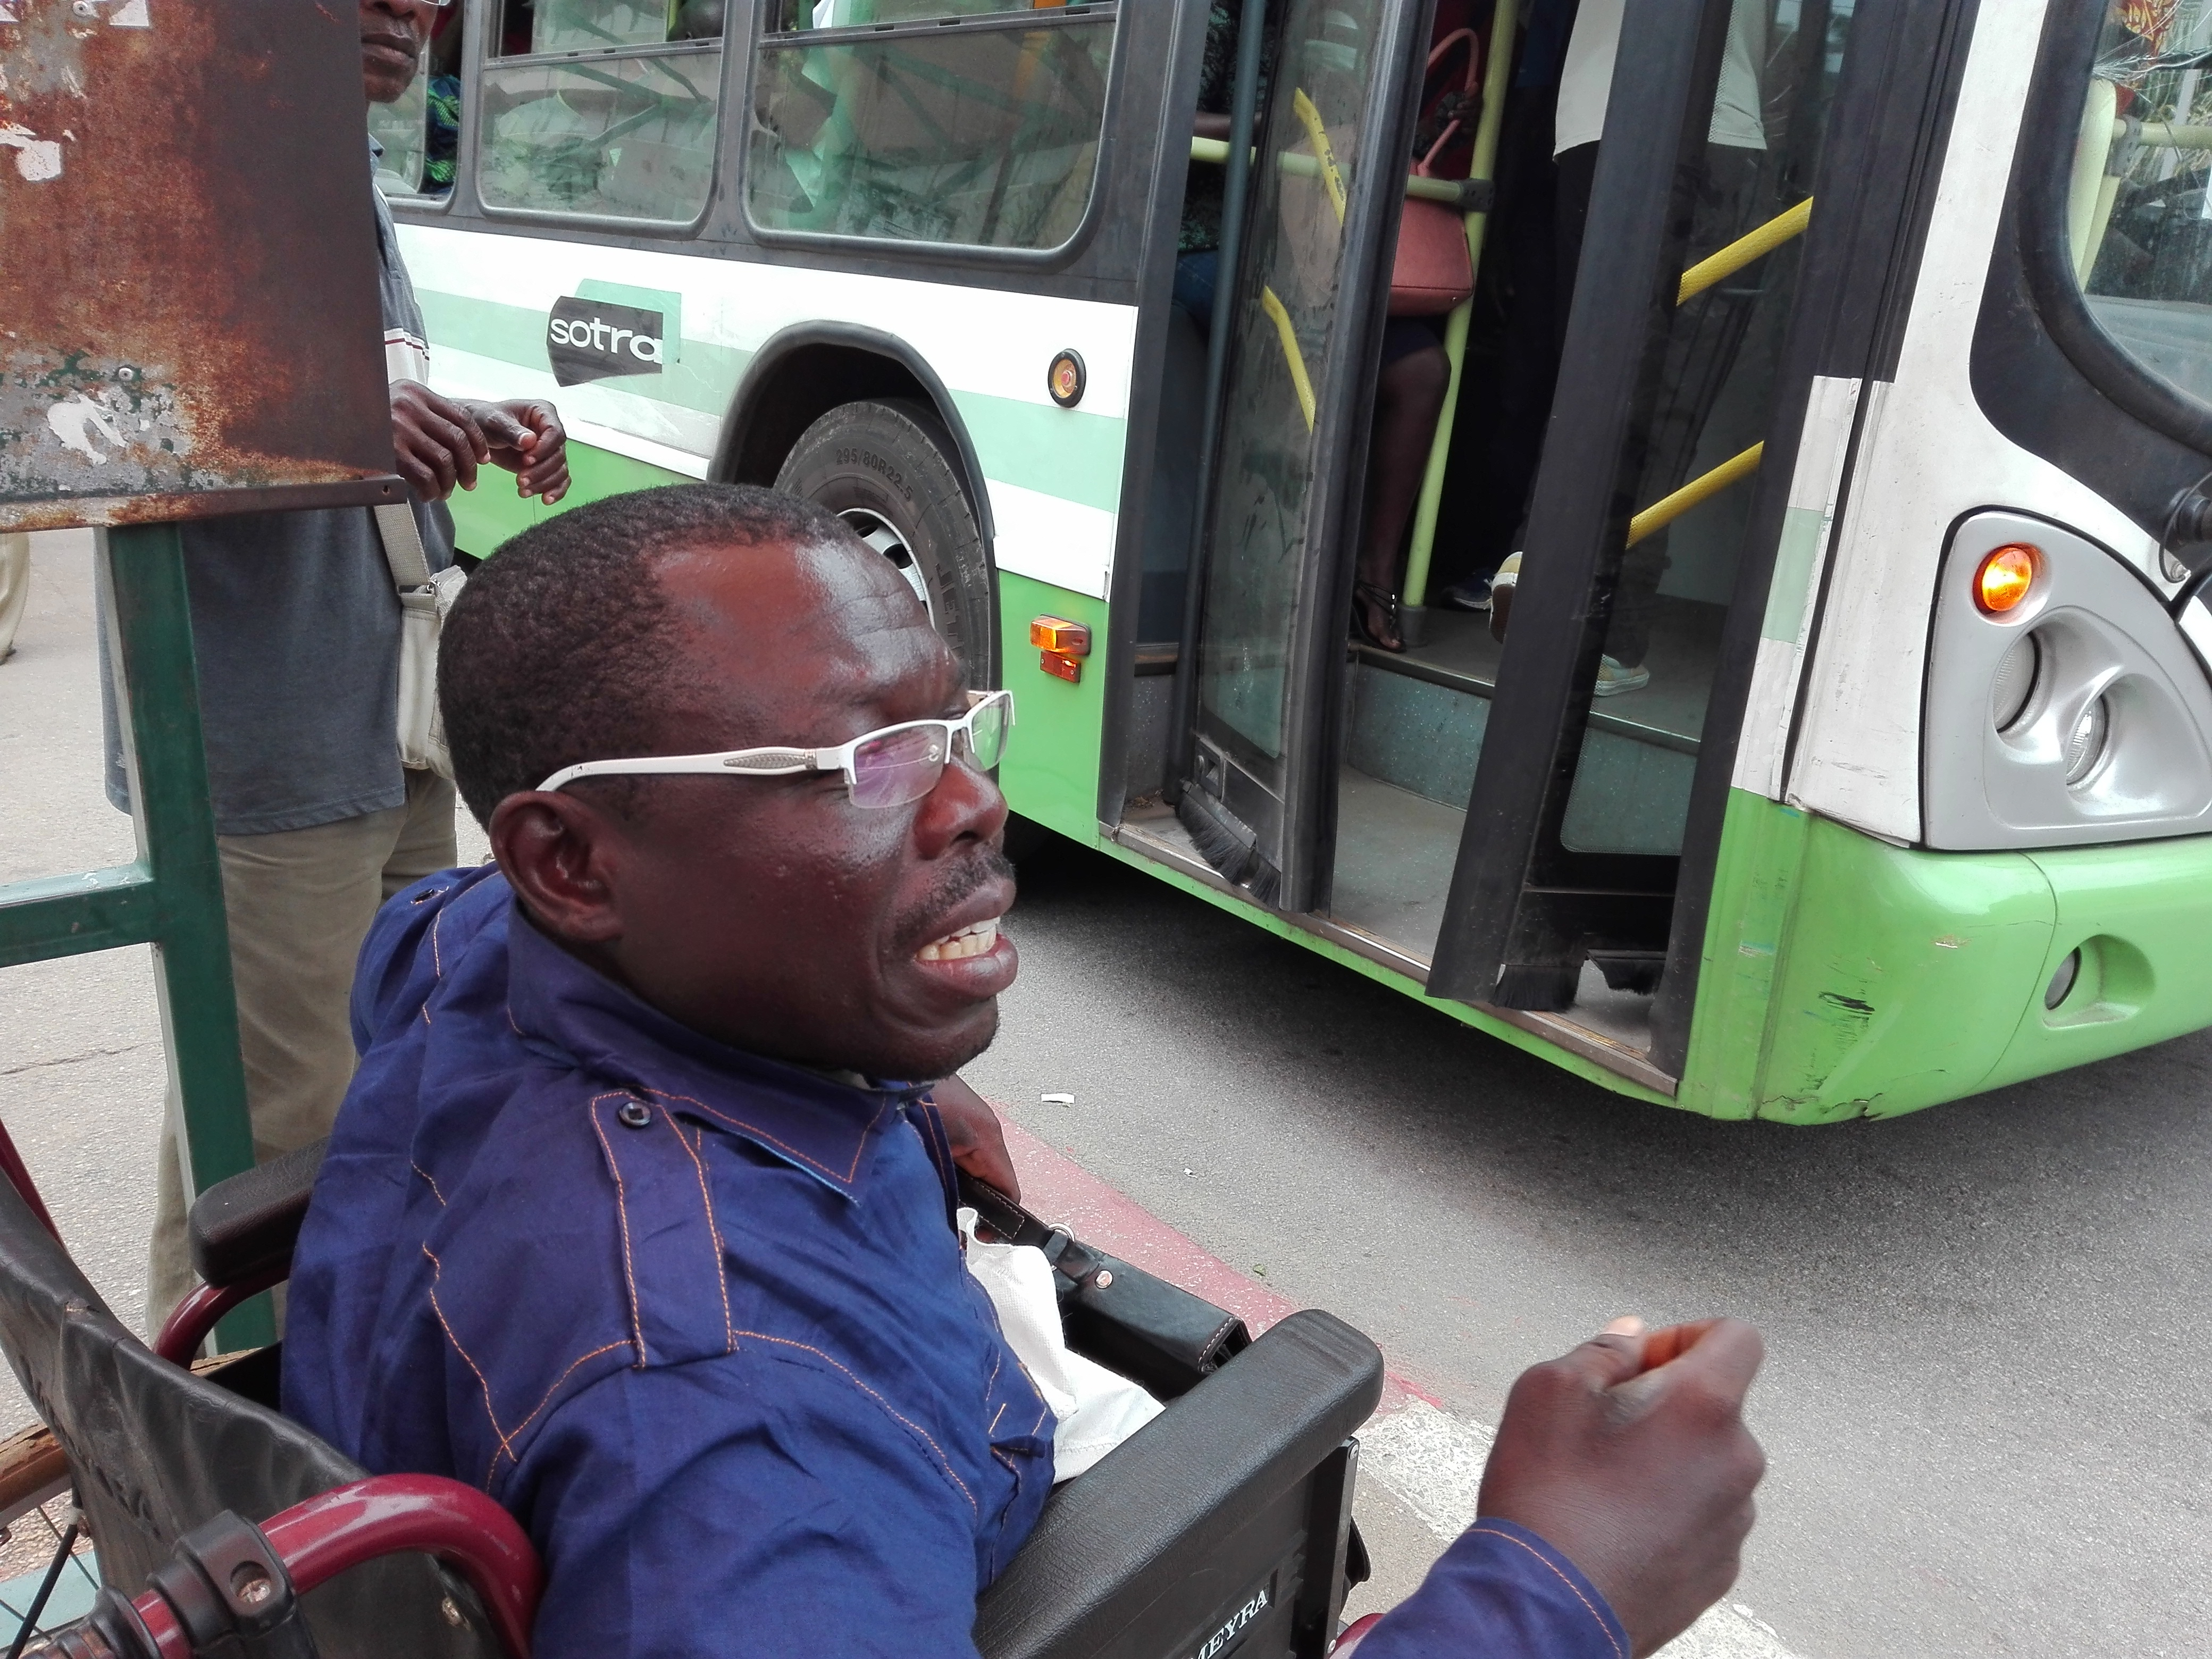 A man in a wheelchair waits on the side of the street where a bus has stopped.